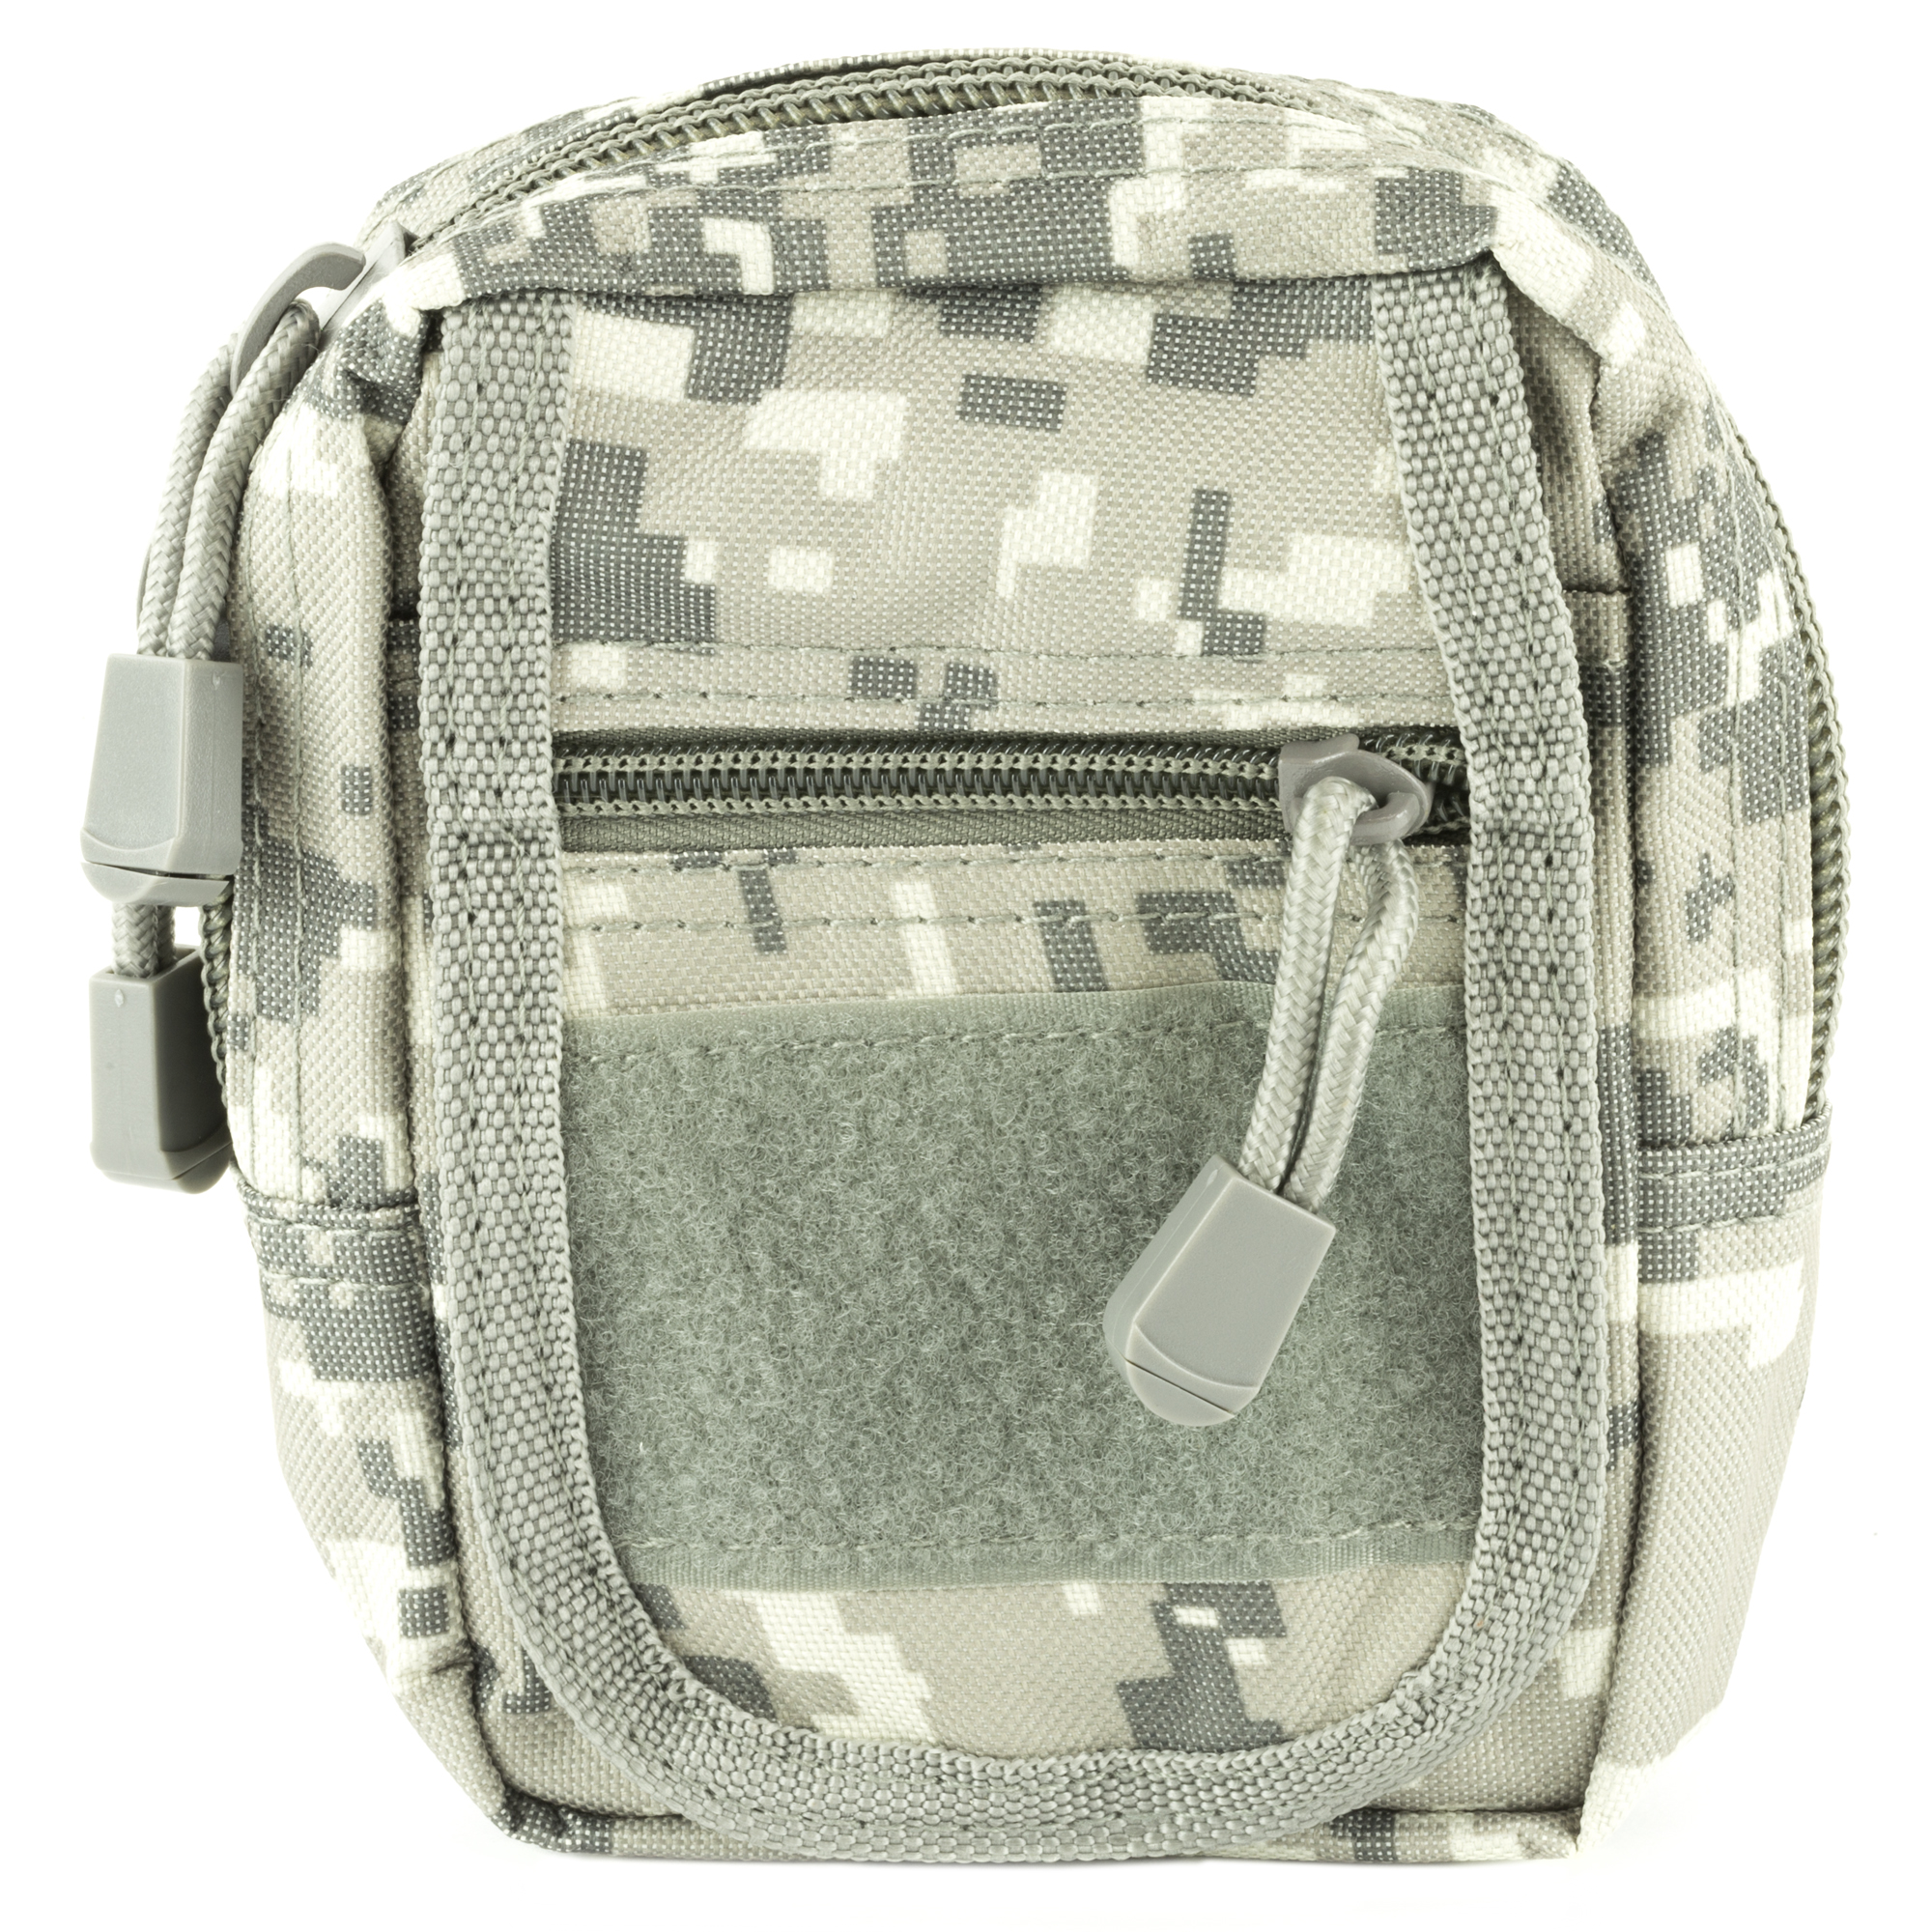 NCSTAR Small Utility Pouch Nylon – Digital Camo